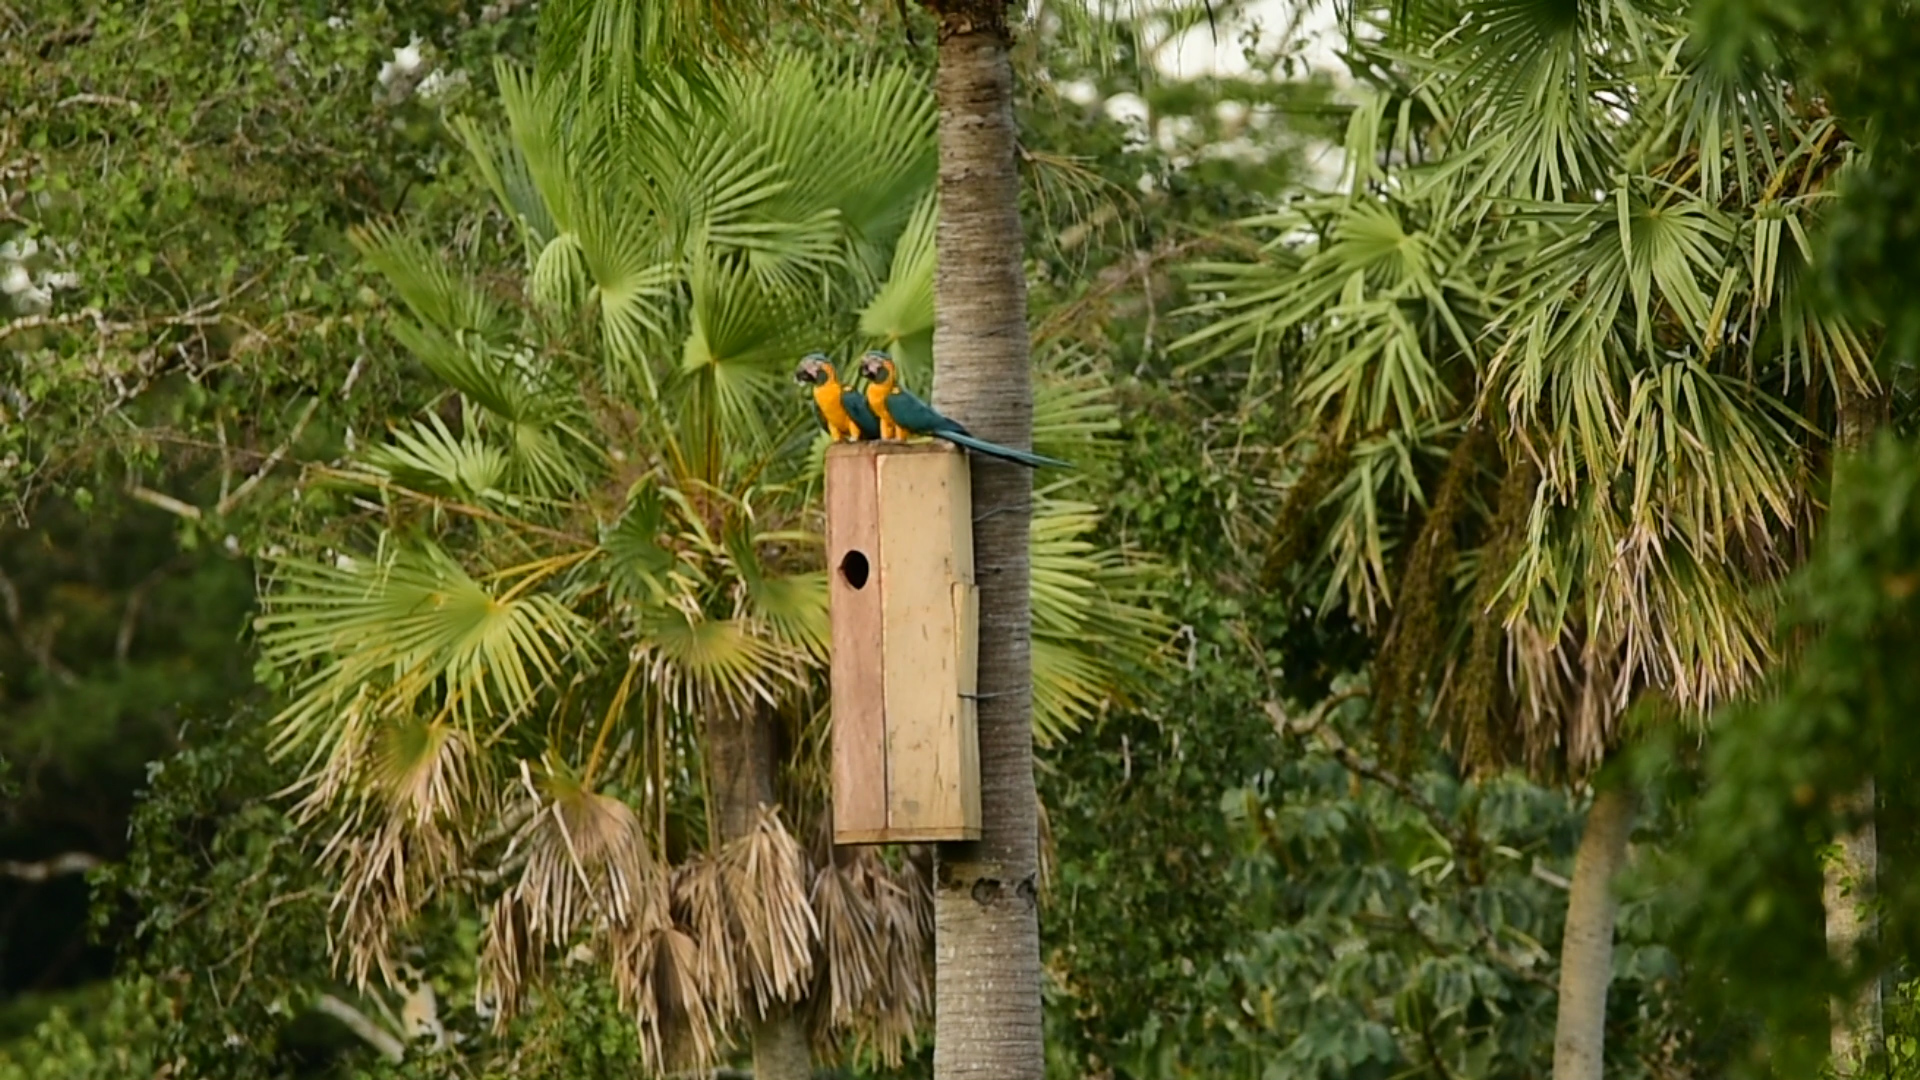 Blue-throated macaws atop nest box at Laney Rickman reserve